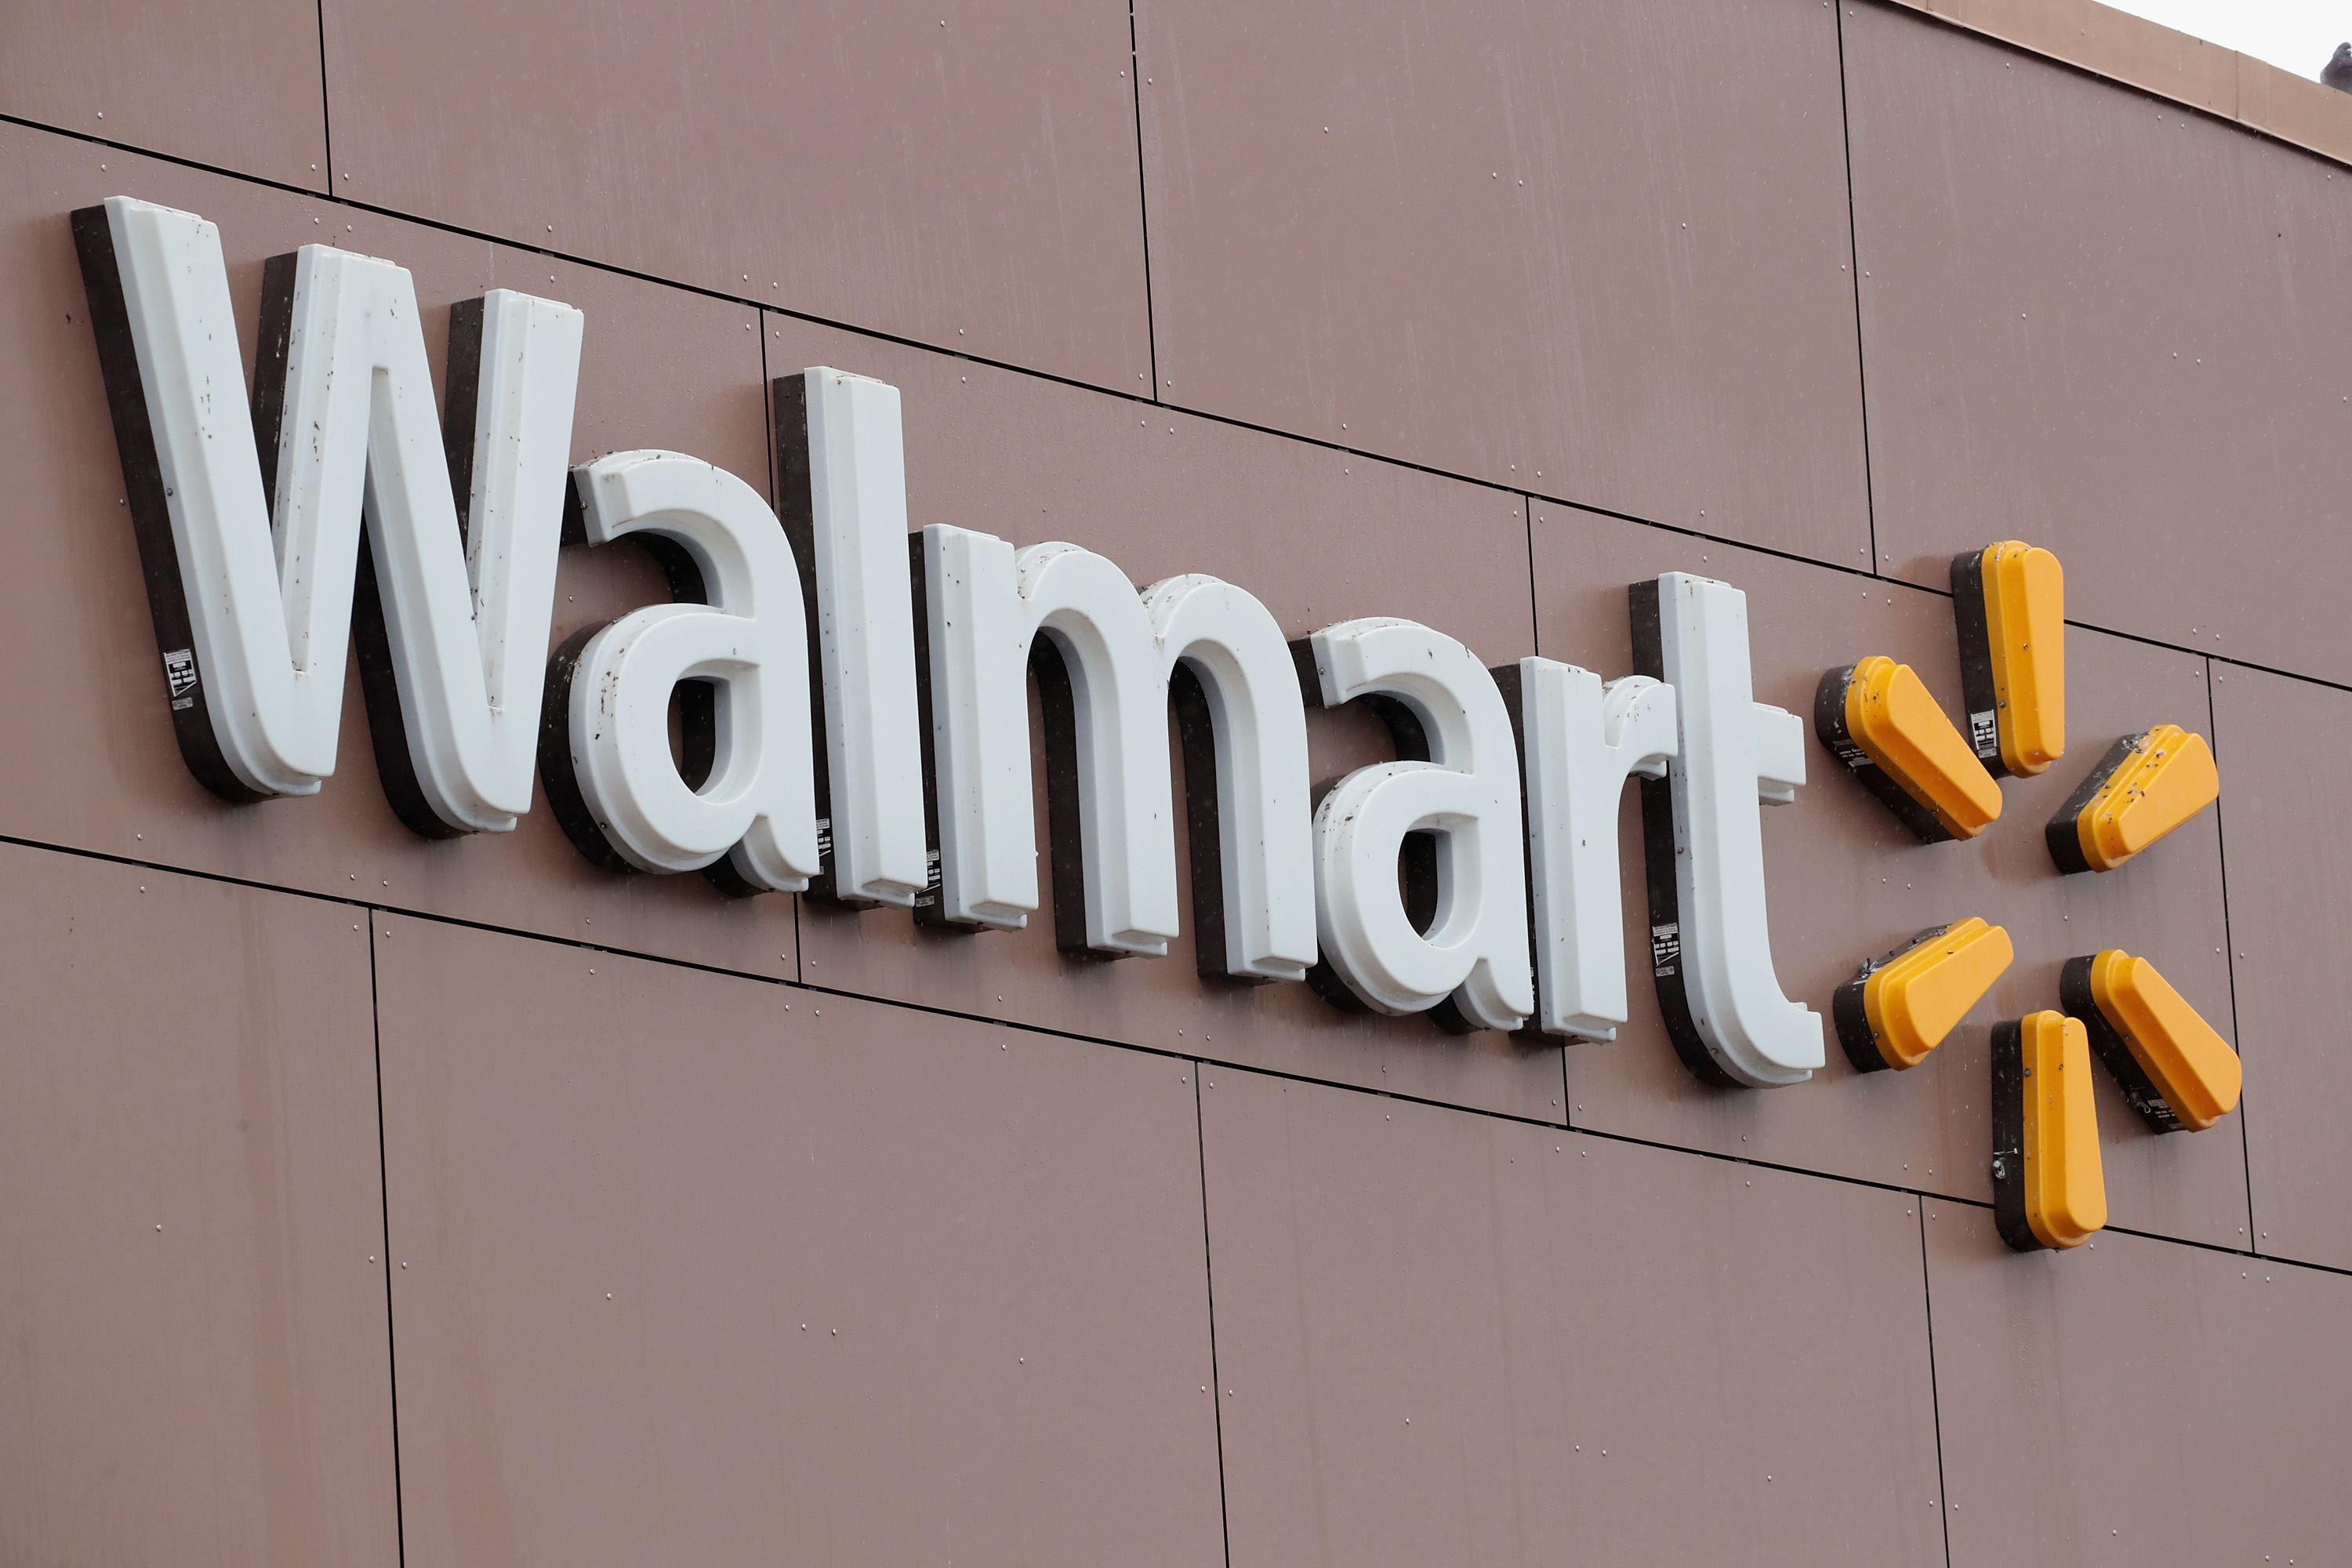 Woman drinking wine from Pringles can banned from Texas Walmart